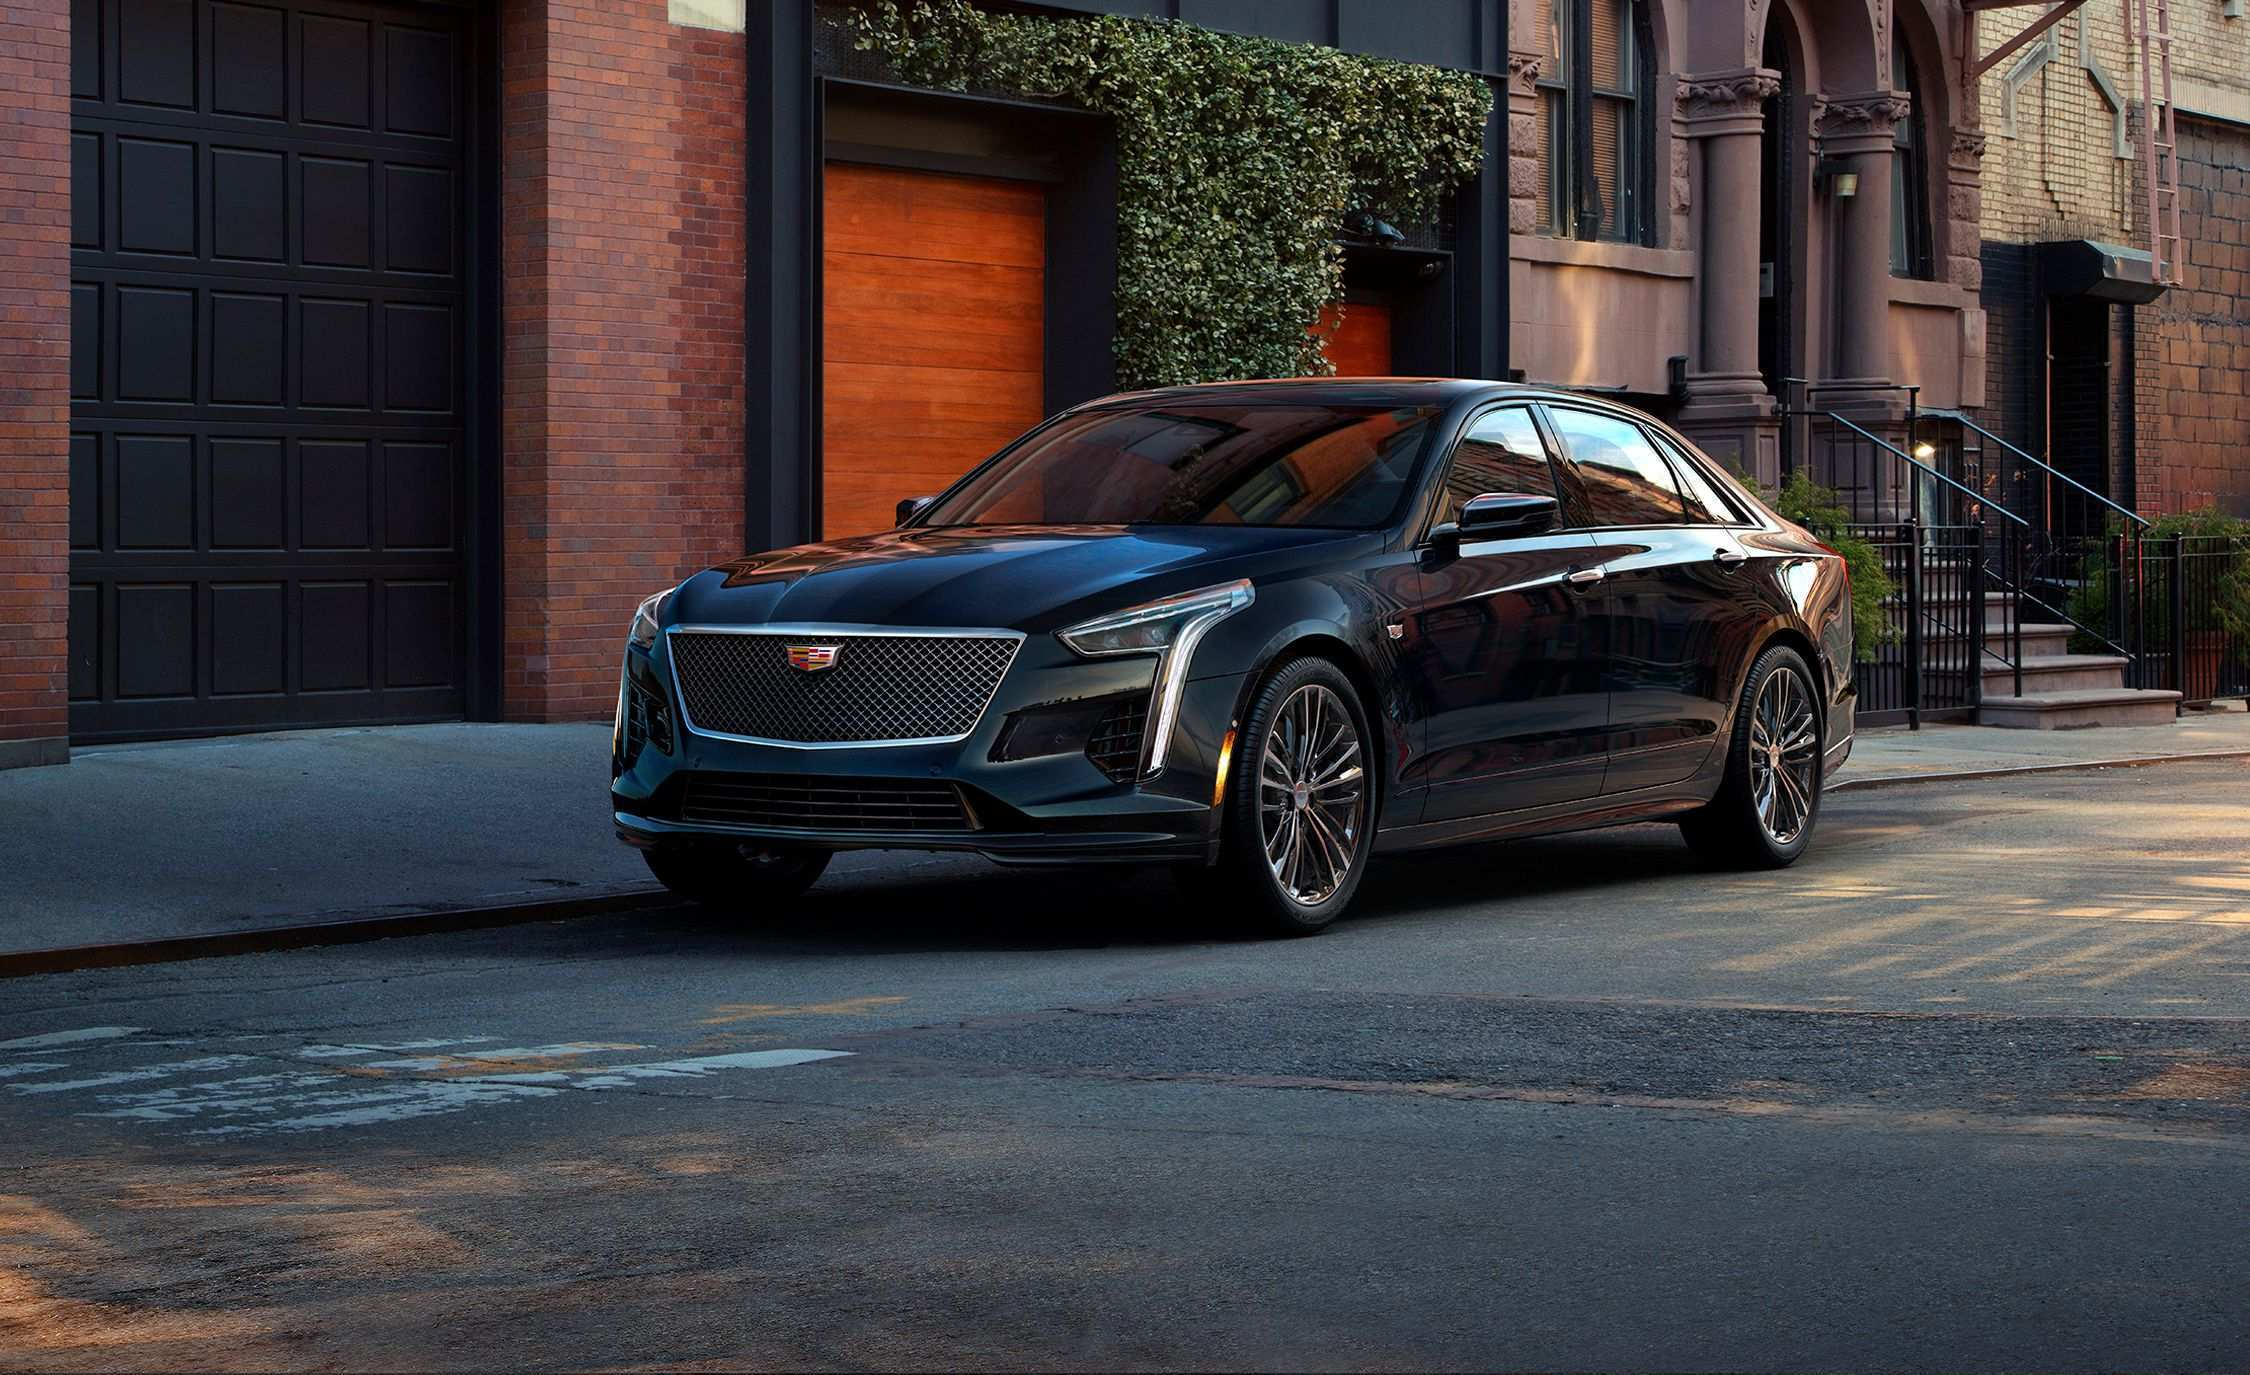 79 Great 2019 Cadillac Pics Release with 2019 Cadillac Pics